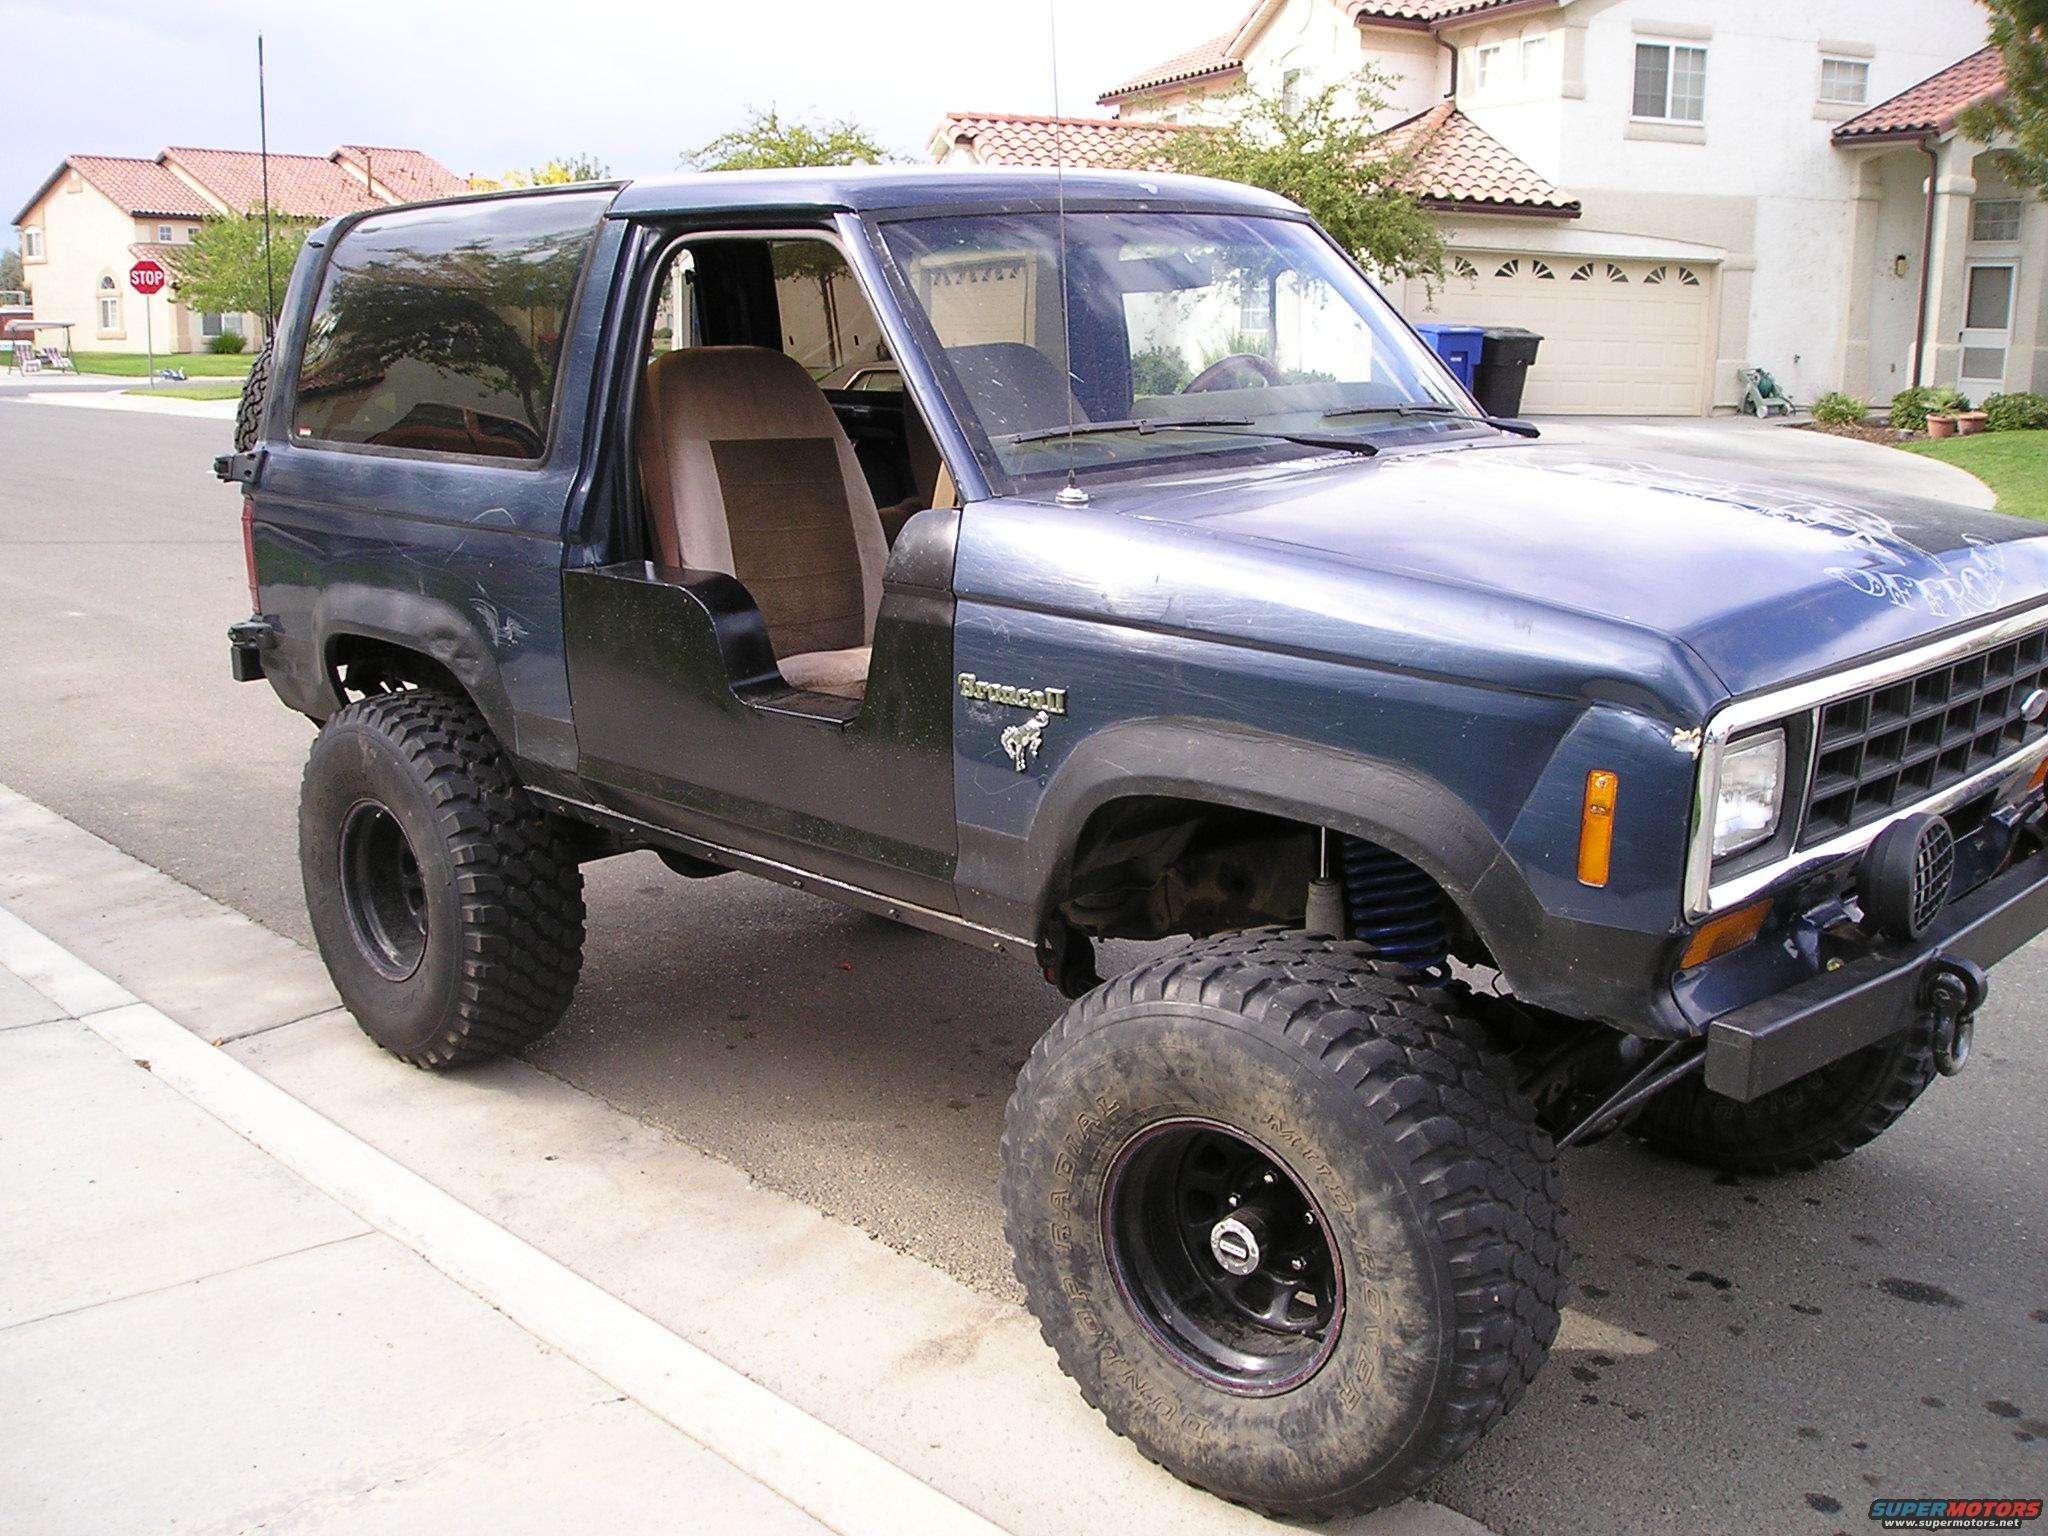 half-doors-and-35s.jpg | Hits: 1211 | Posted on: 11/2/06| View Low-Res